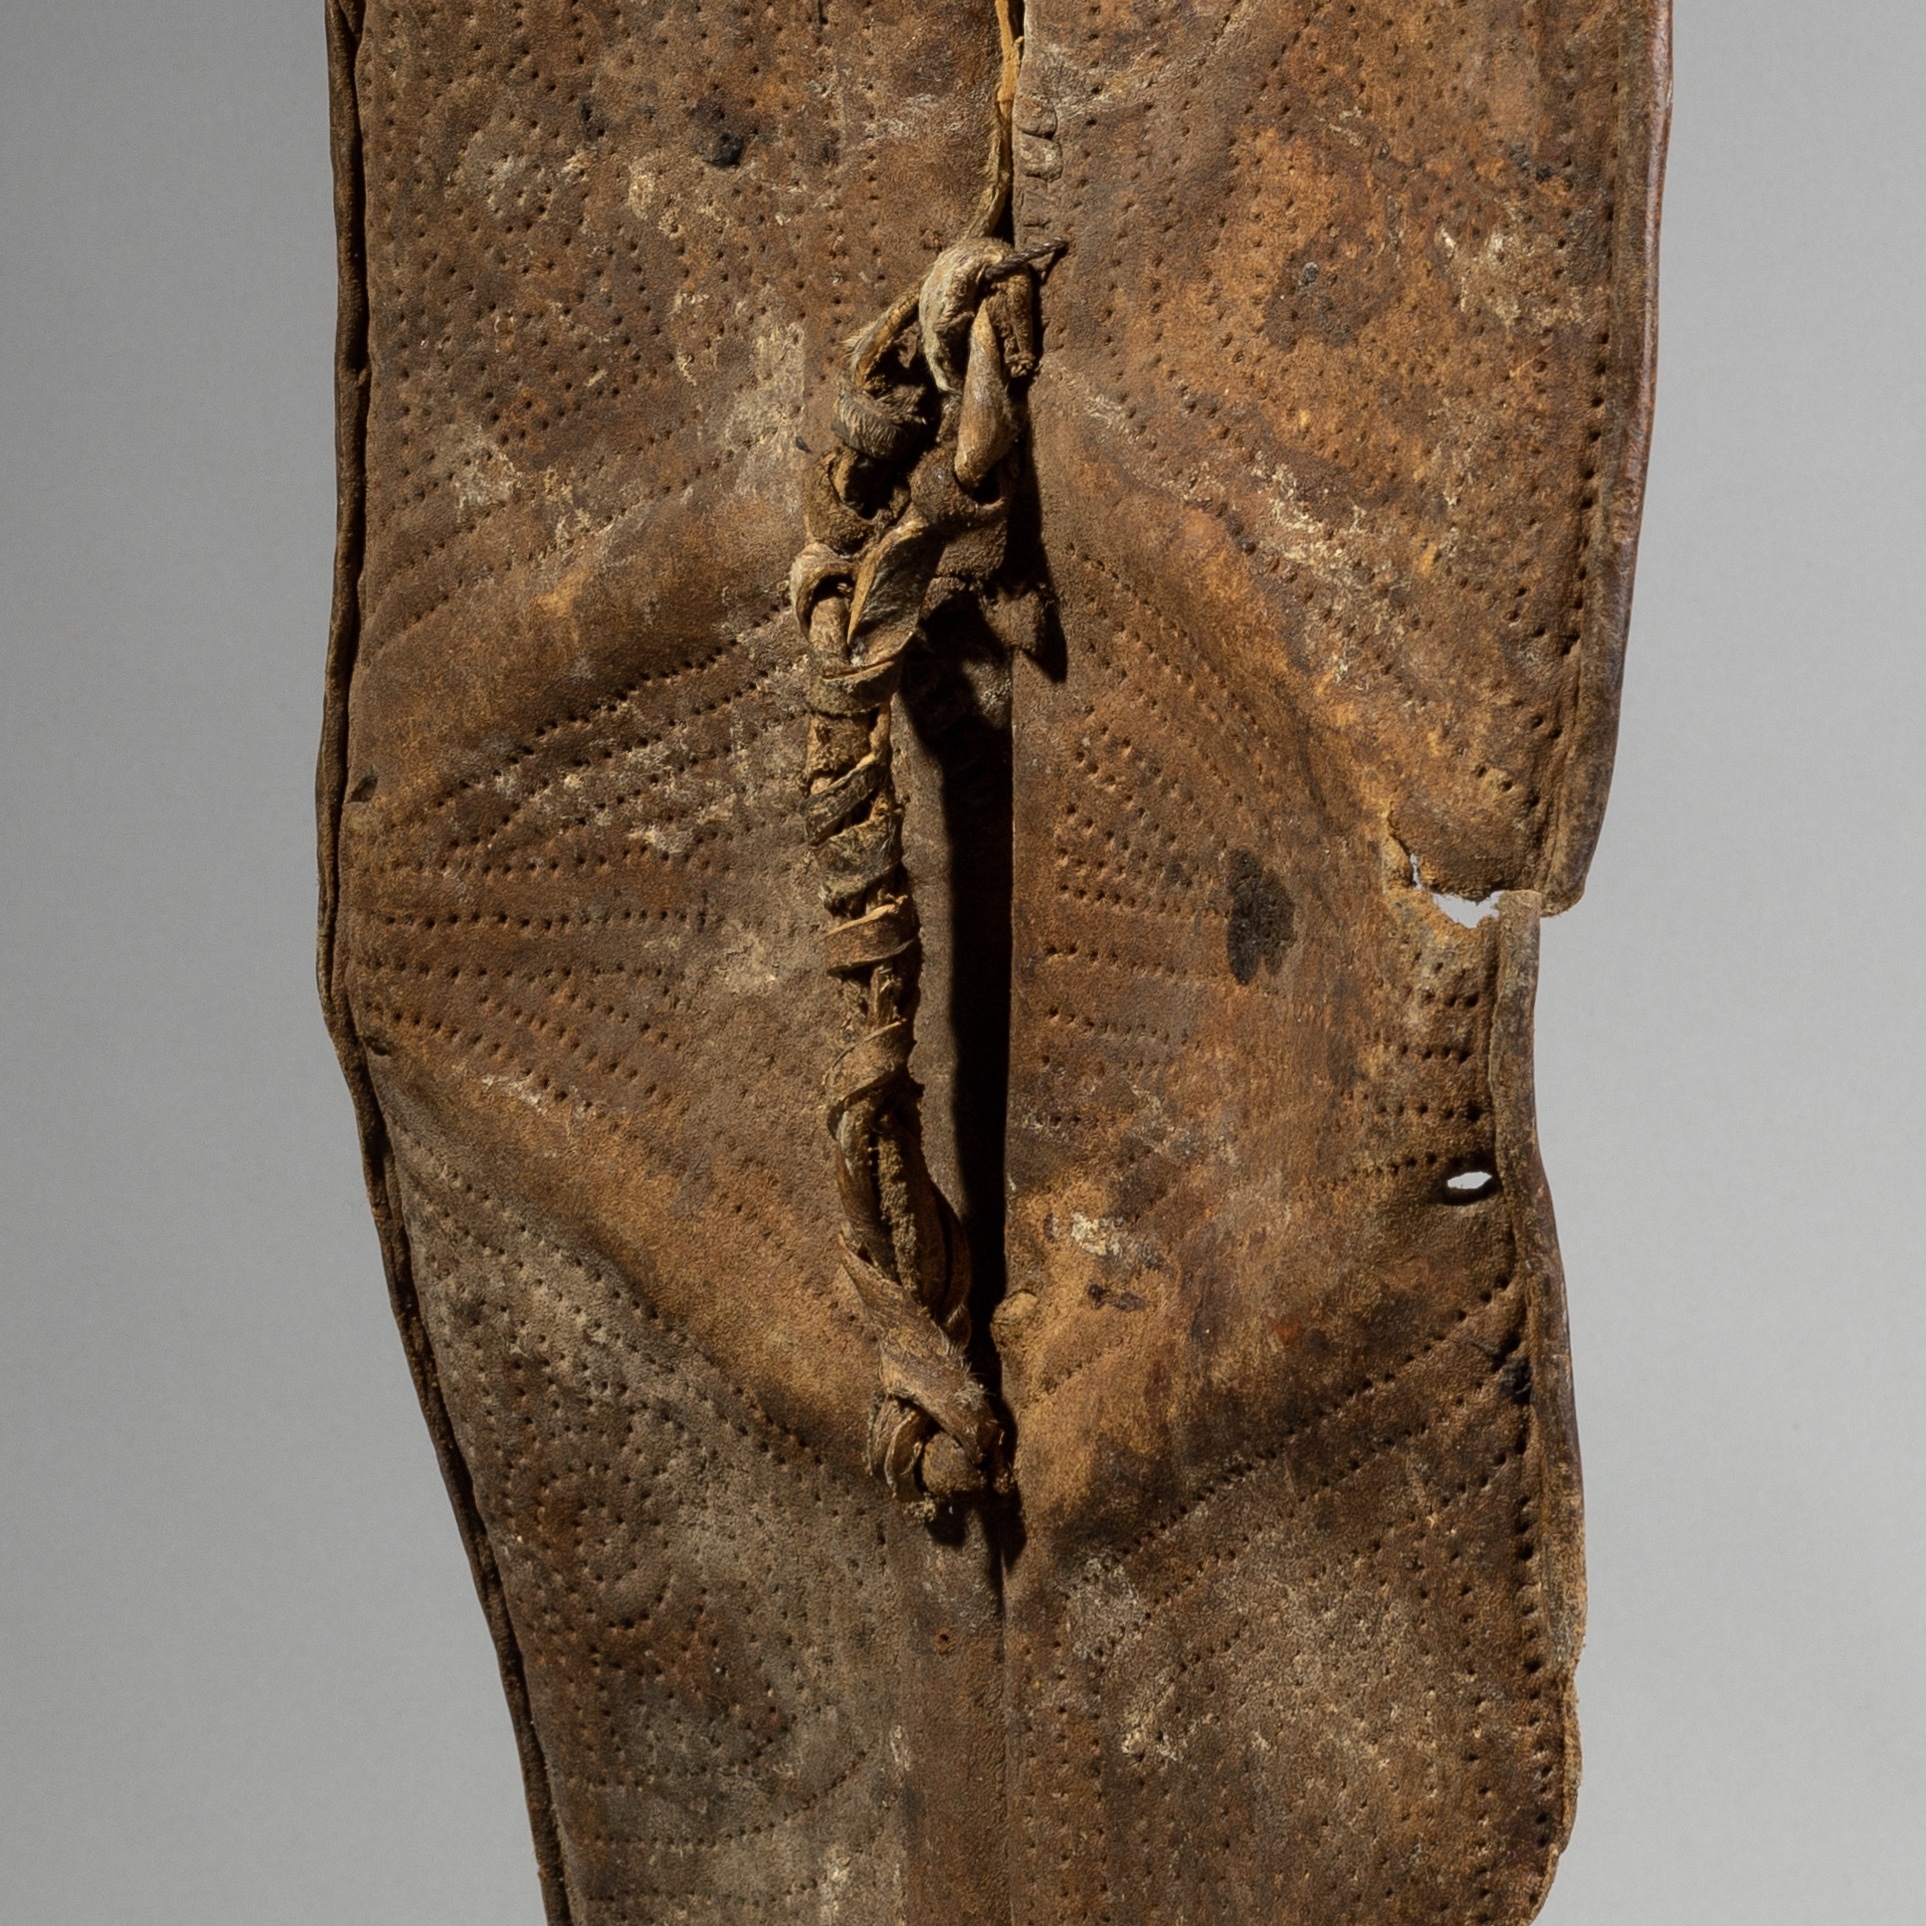 A WORN LEAF SHAPED KONSO SHIELD FROM ETHIOPIA ( No 1407 )